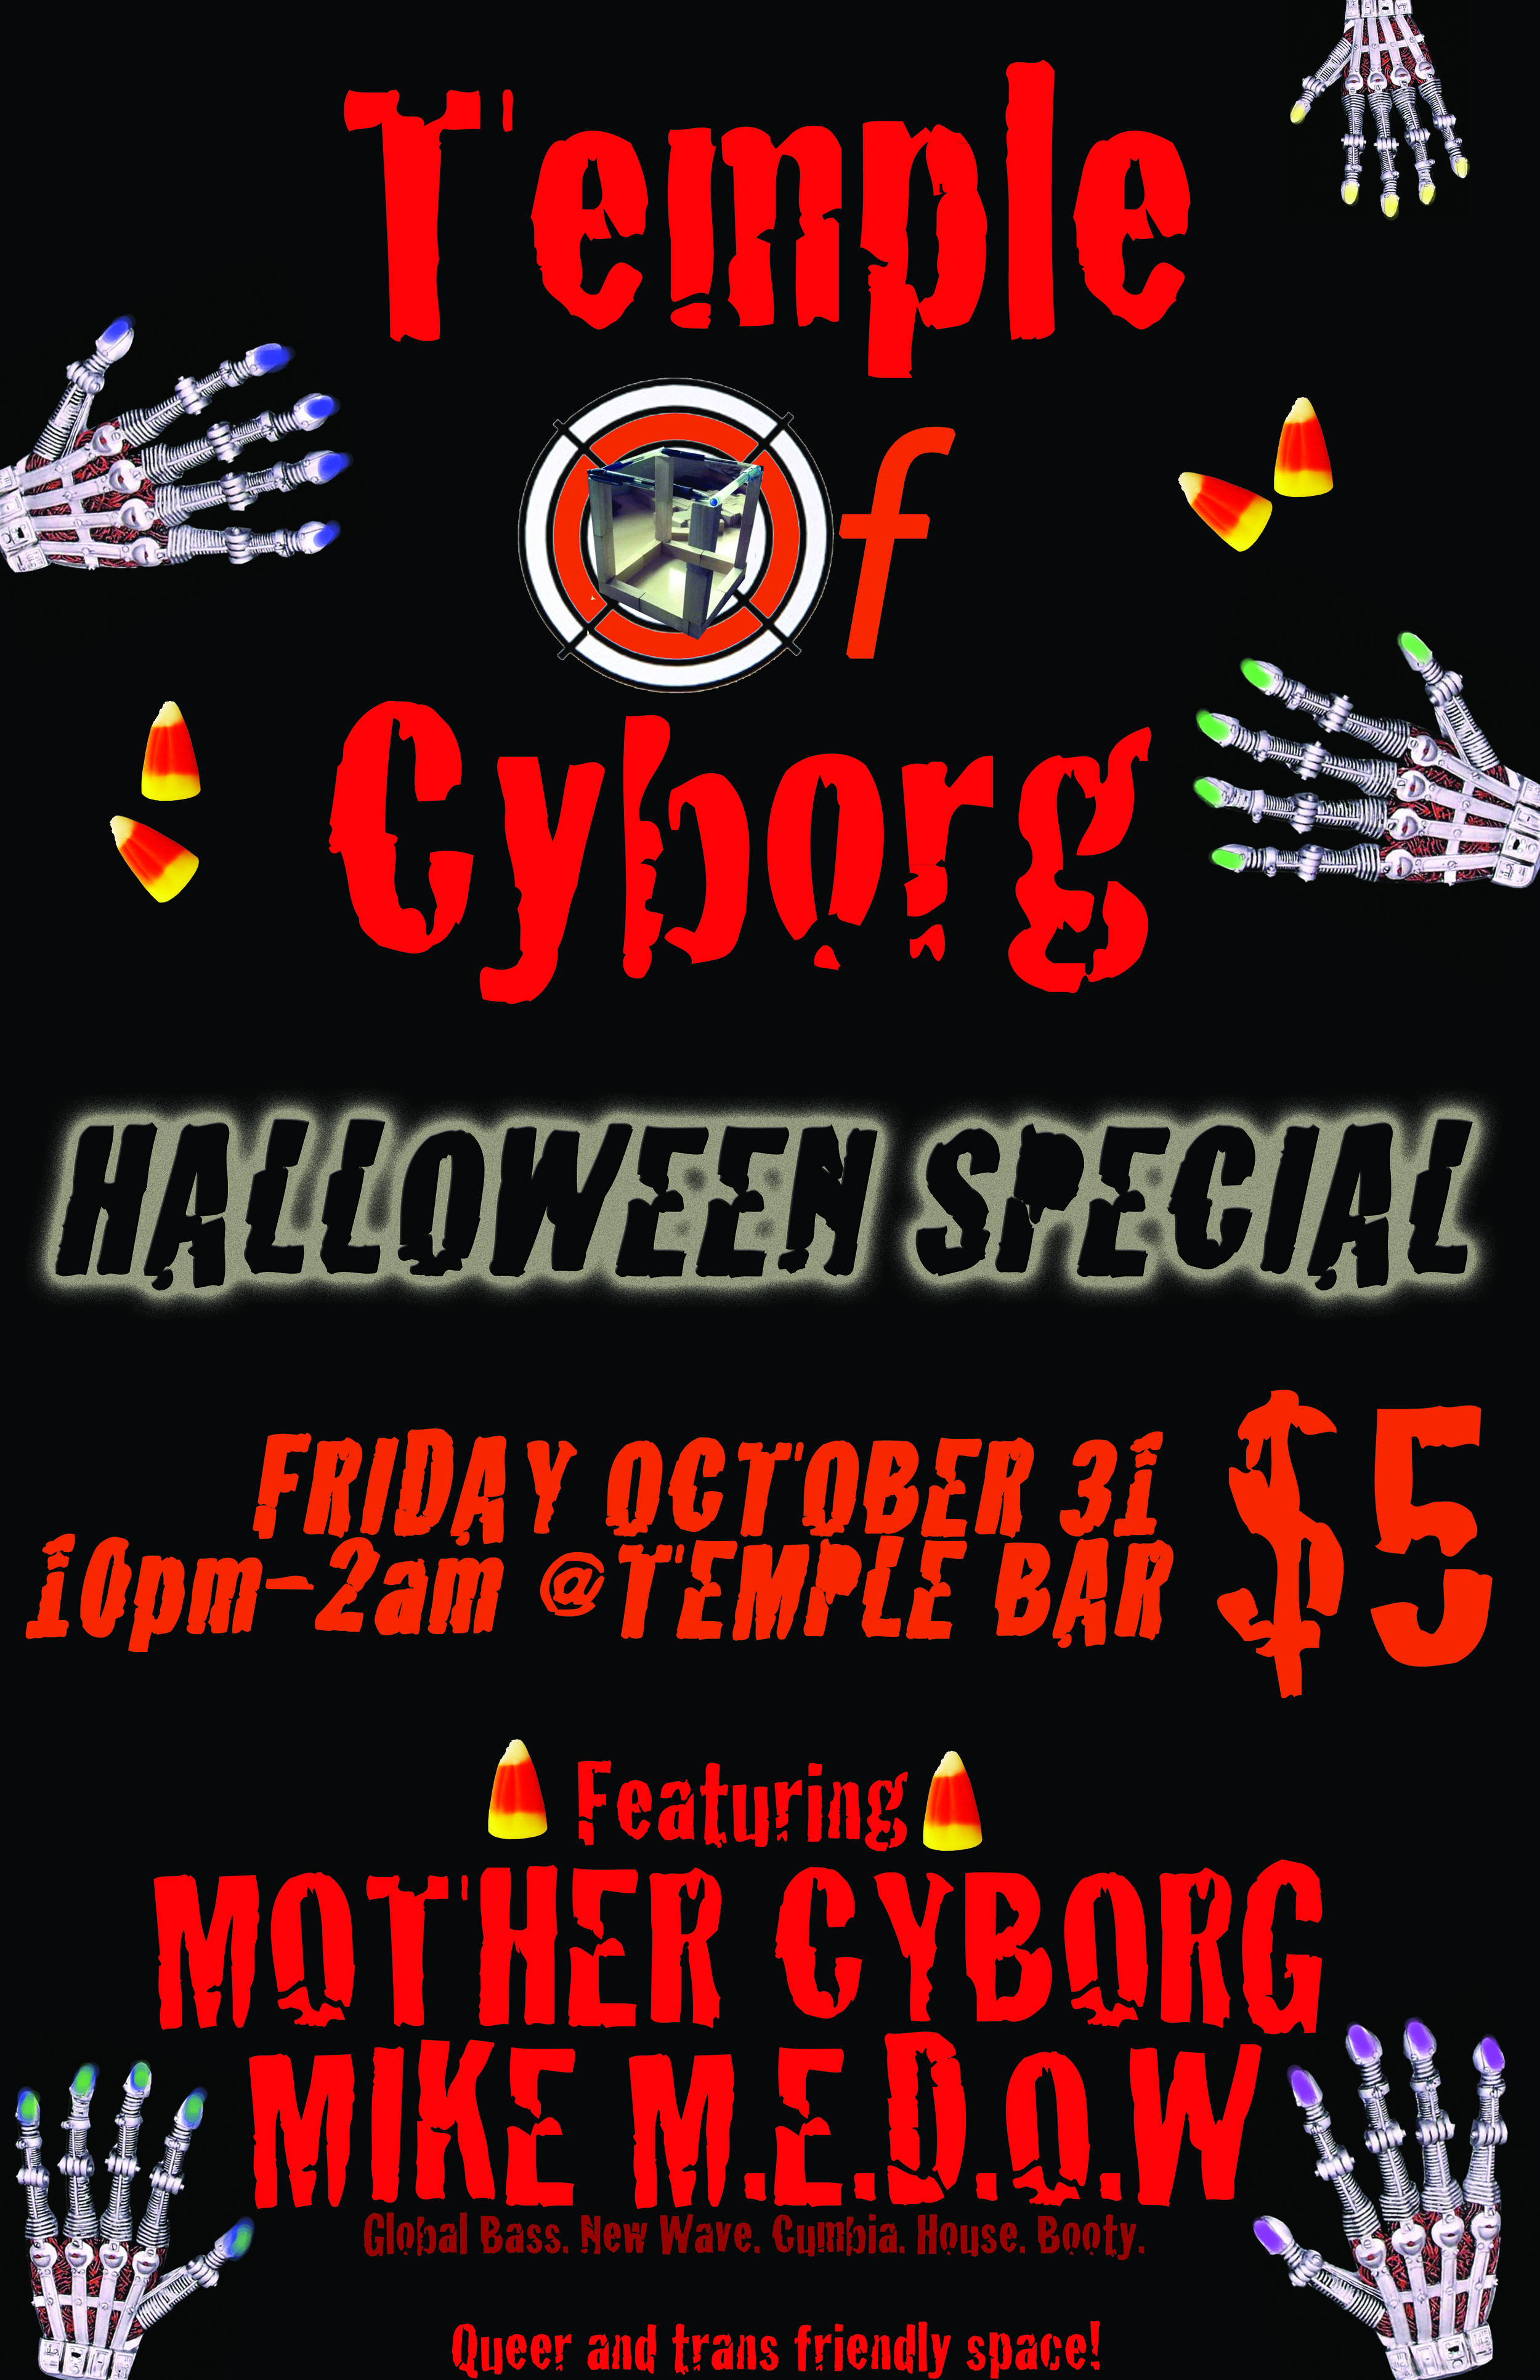 Temple of Cyborg Poster halloween.jpg